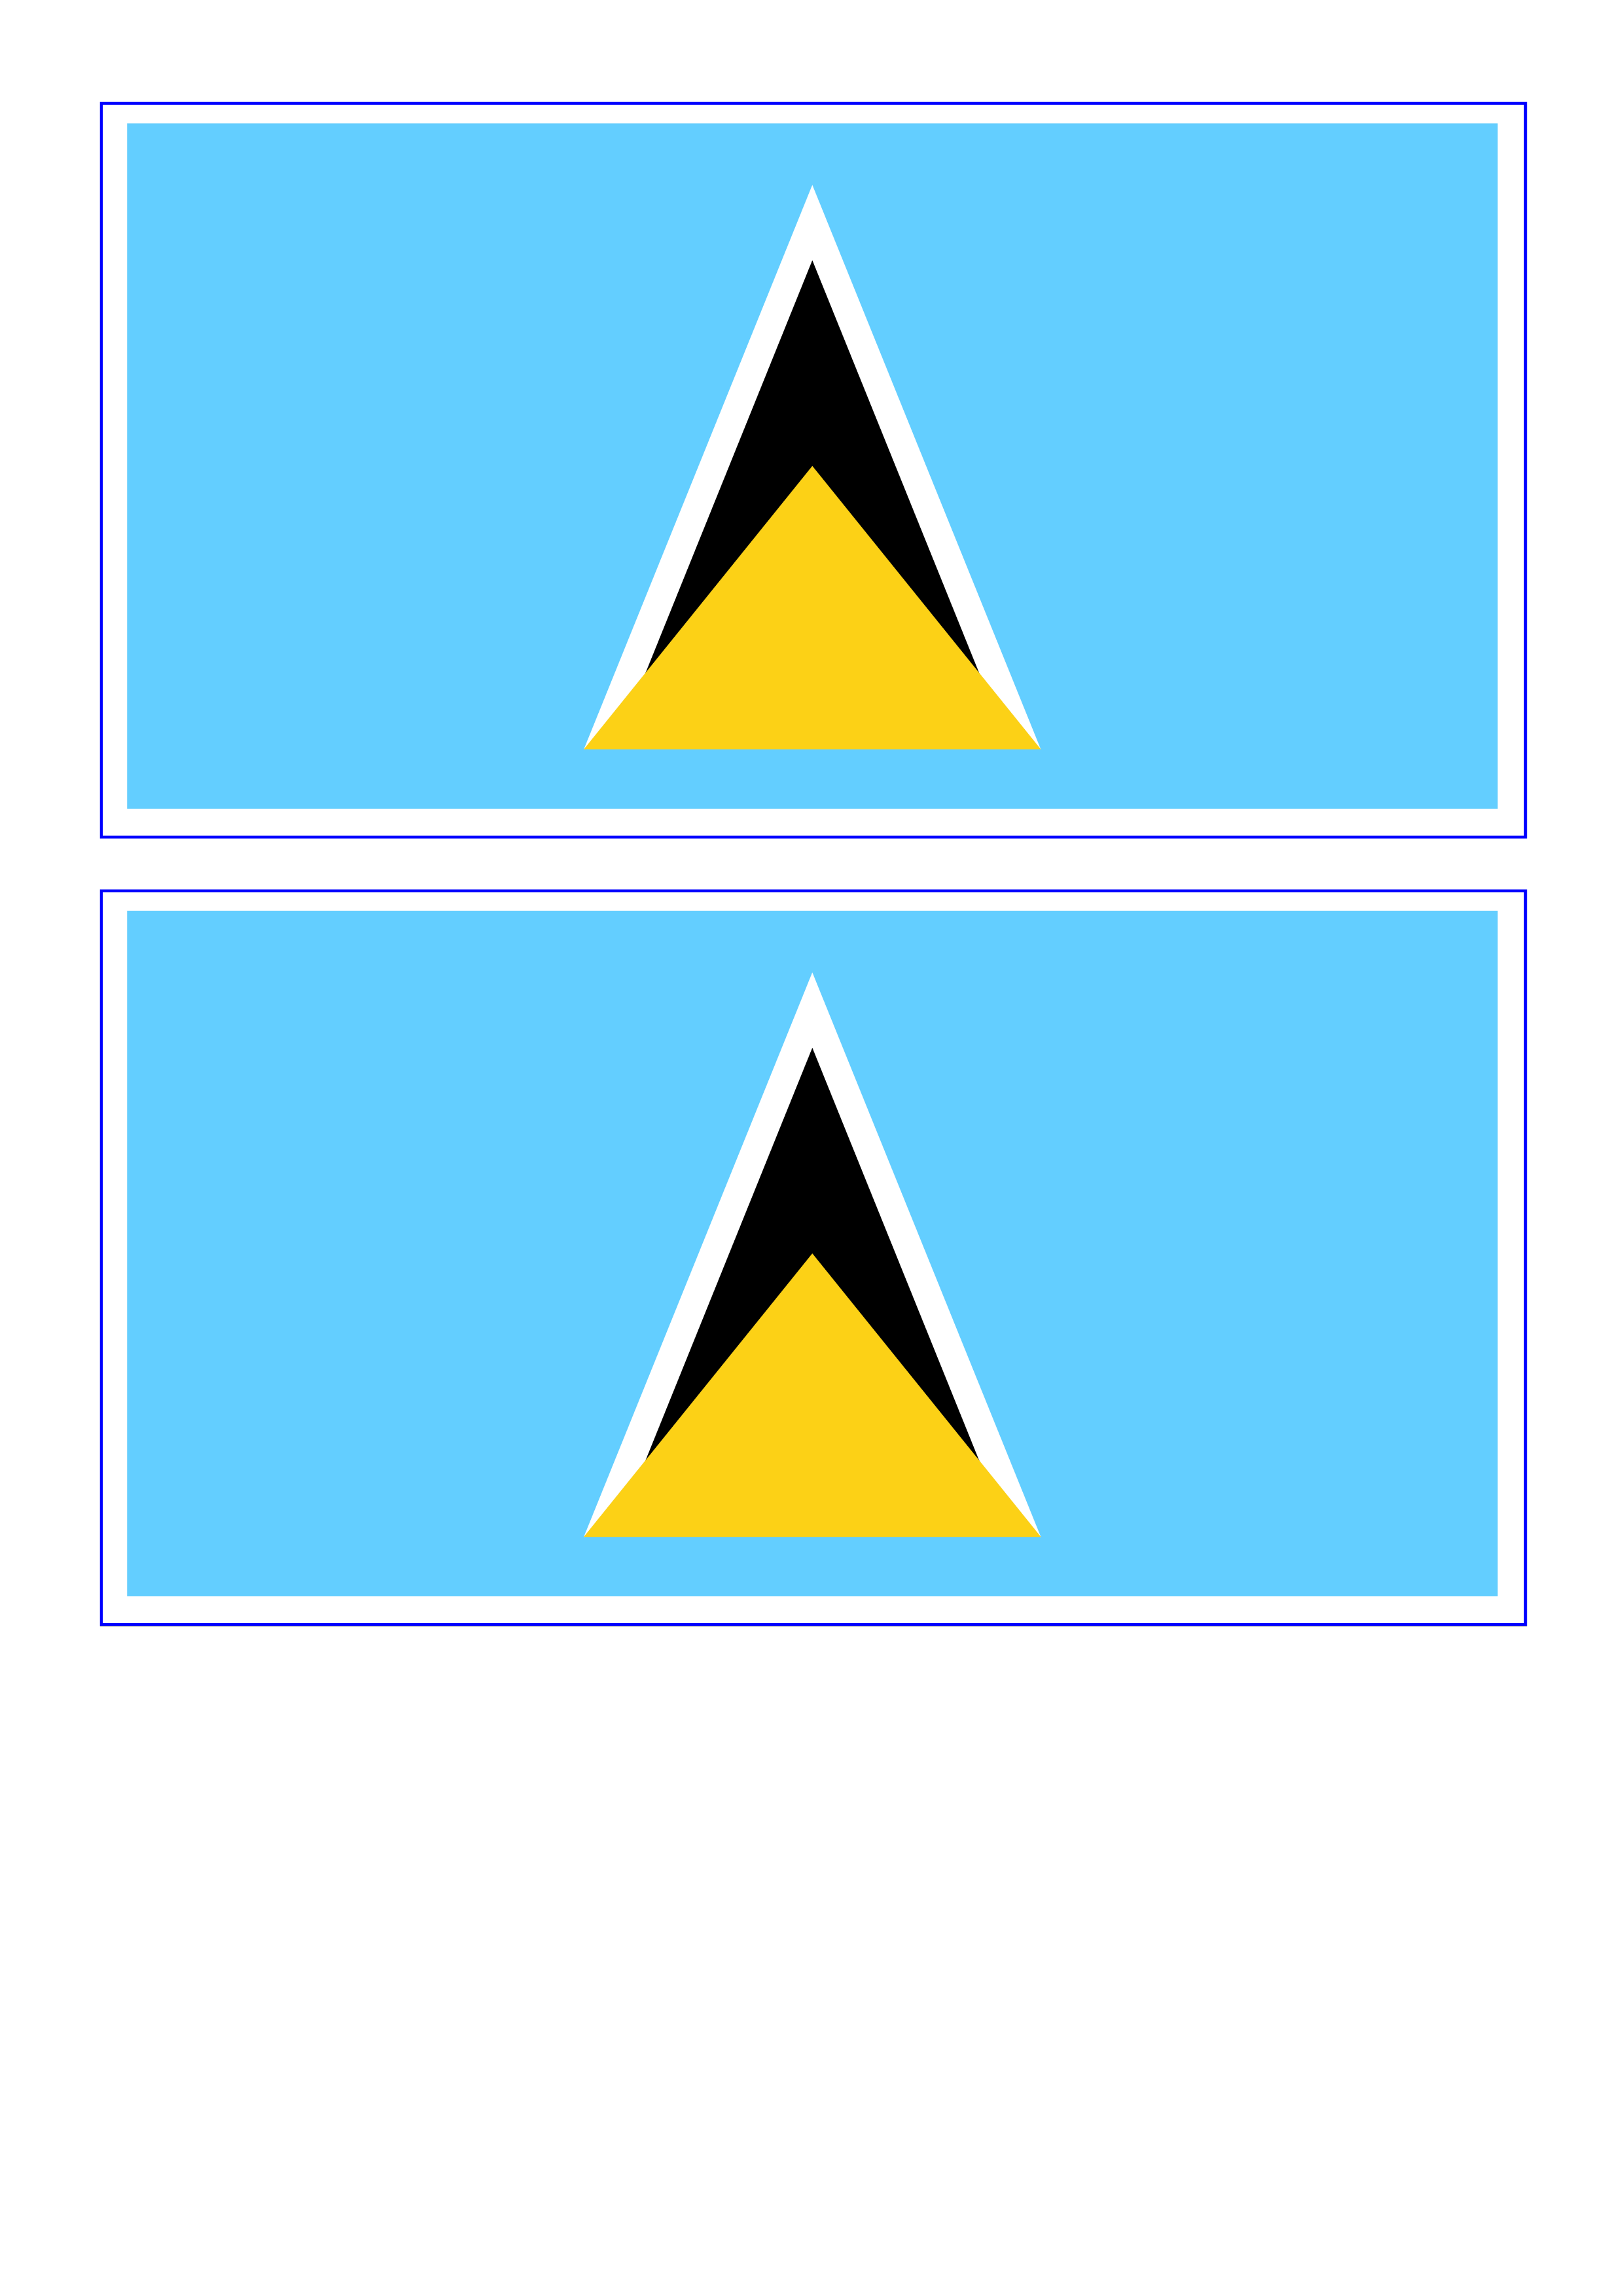 St Lucia Flag Download This Free Printable St Lucia Template A4 Flag A5 Flag 8 And 21 Flags On One A4page Easy To Us Flag Template St Lucia Flag Templates